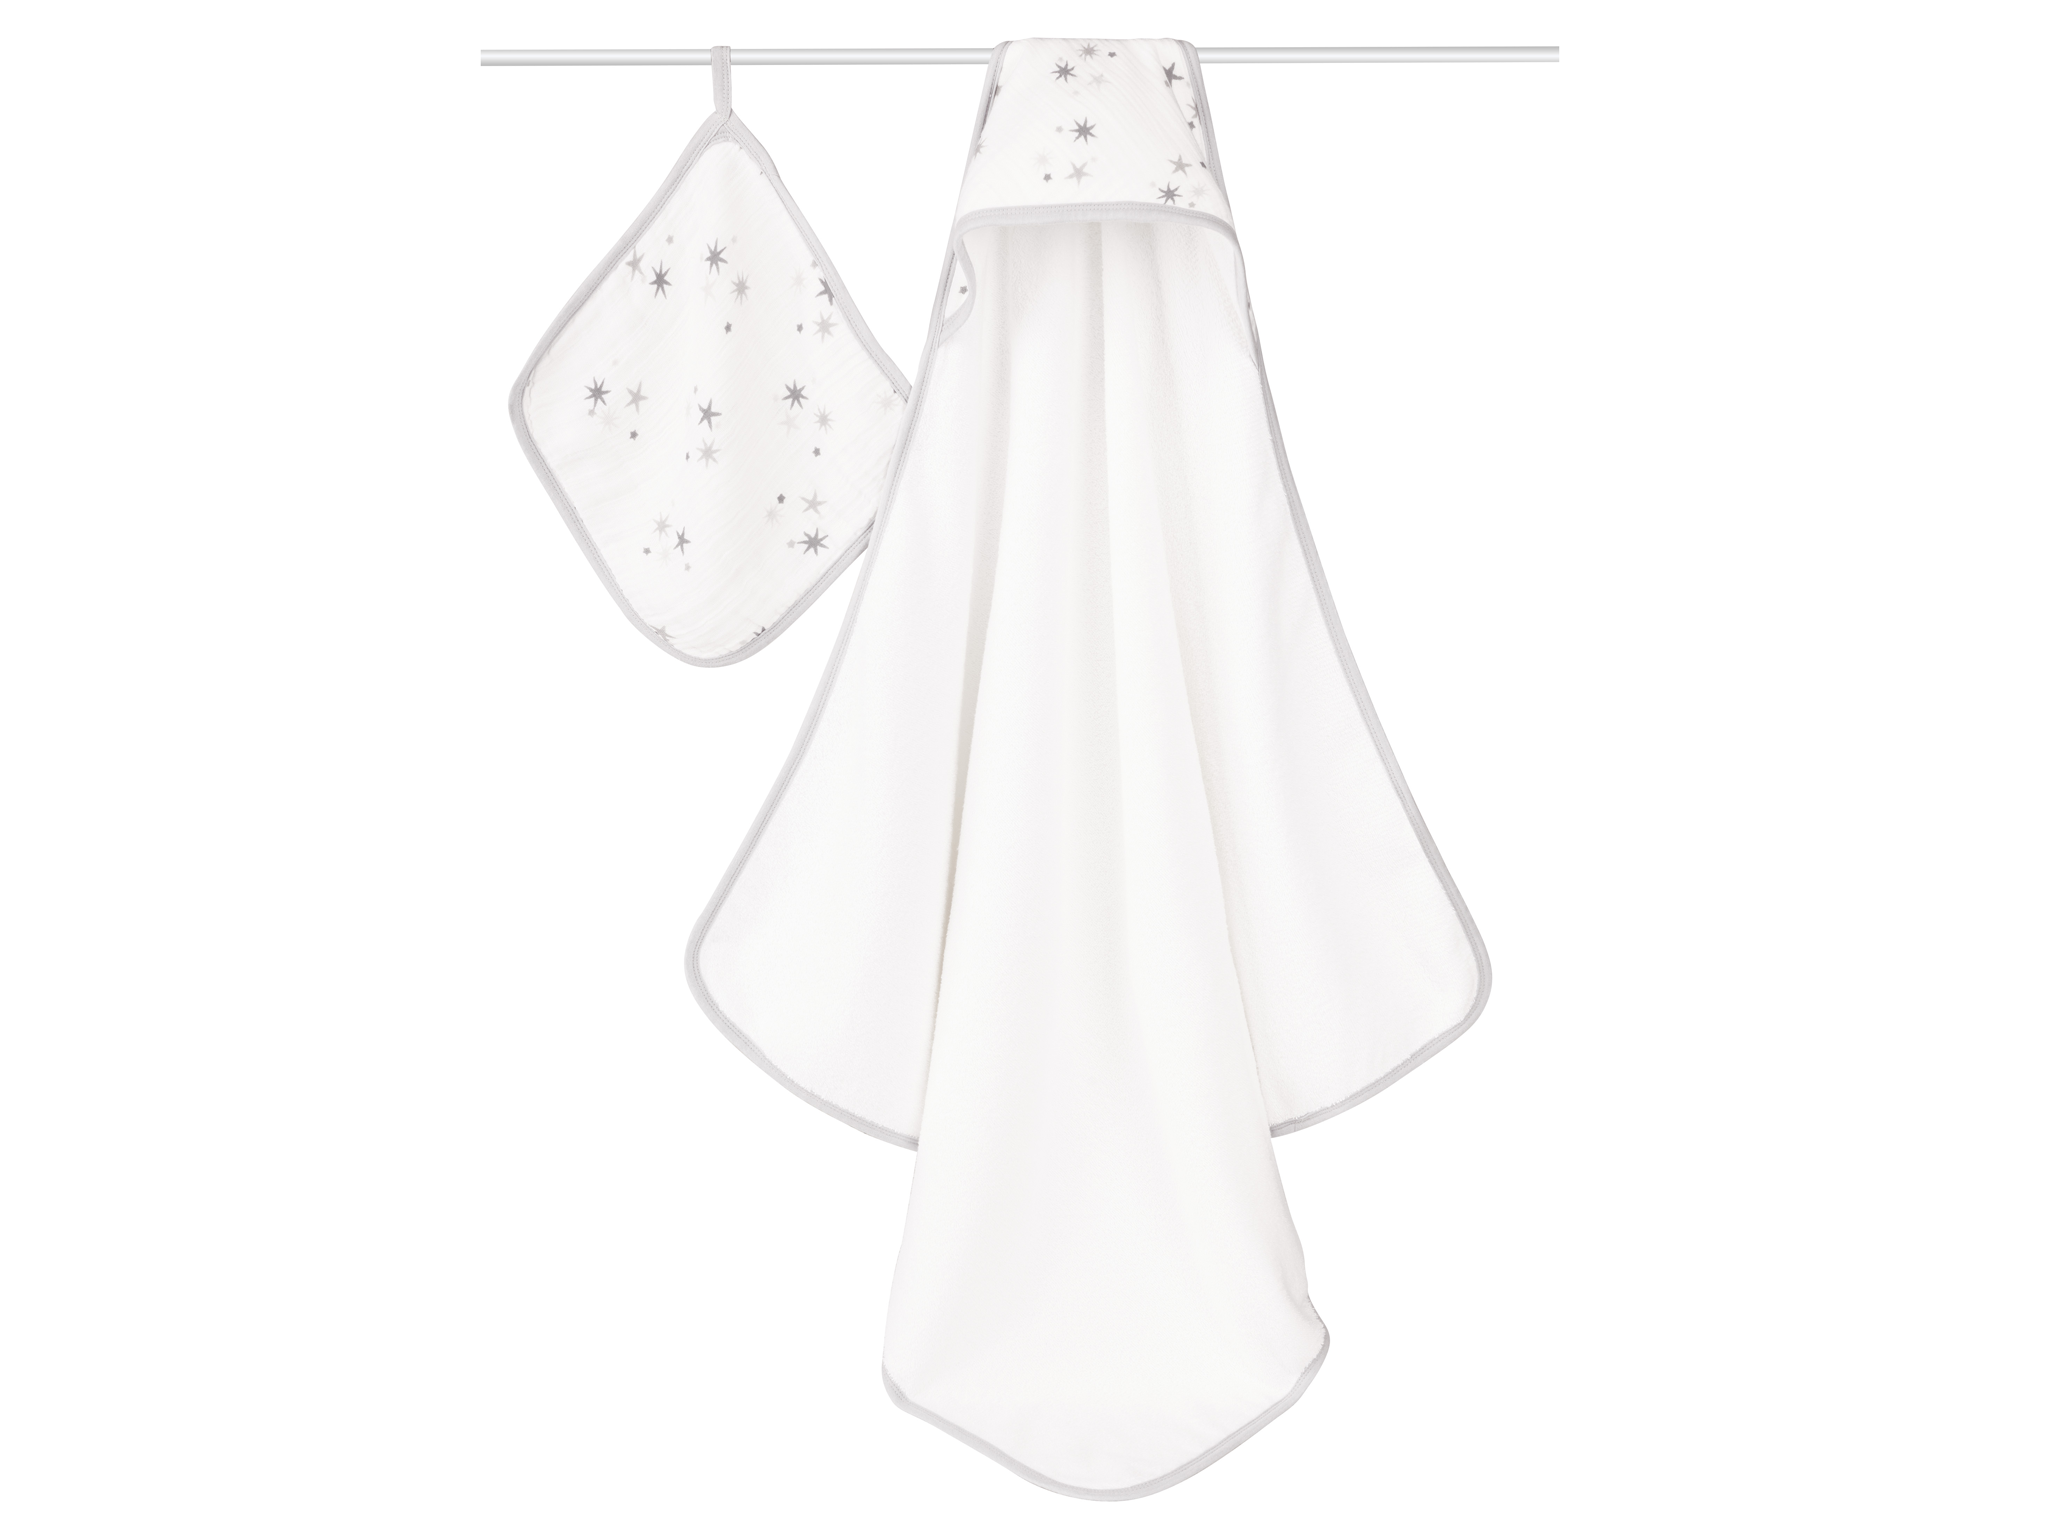 10 best baby and toddler bath towels | The Independent